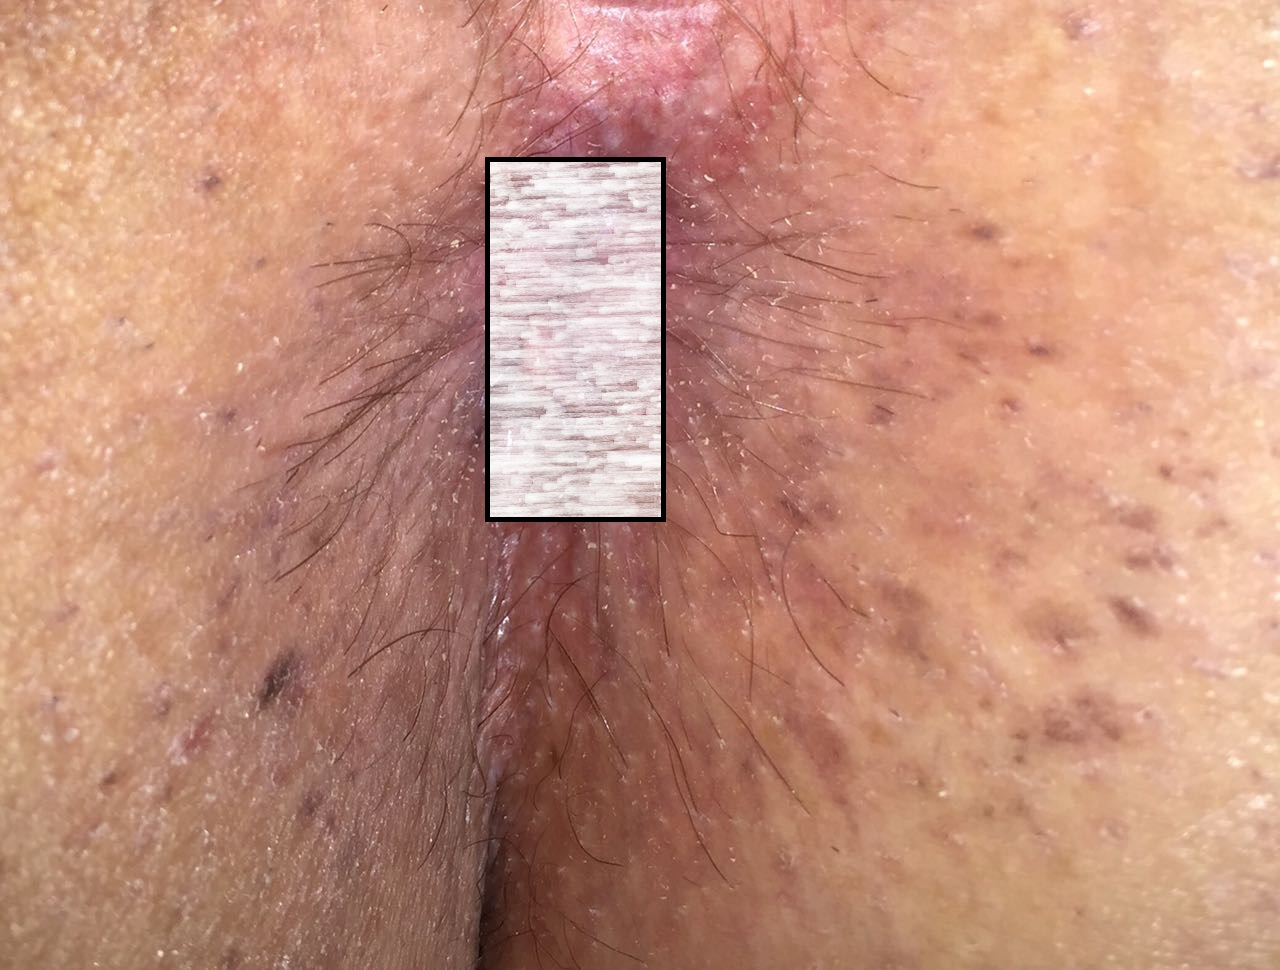 anal warts  after treatment